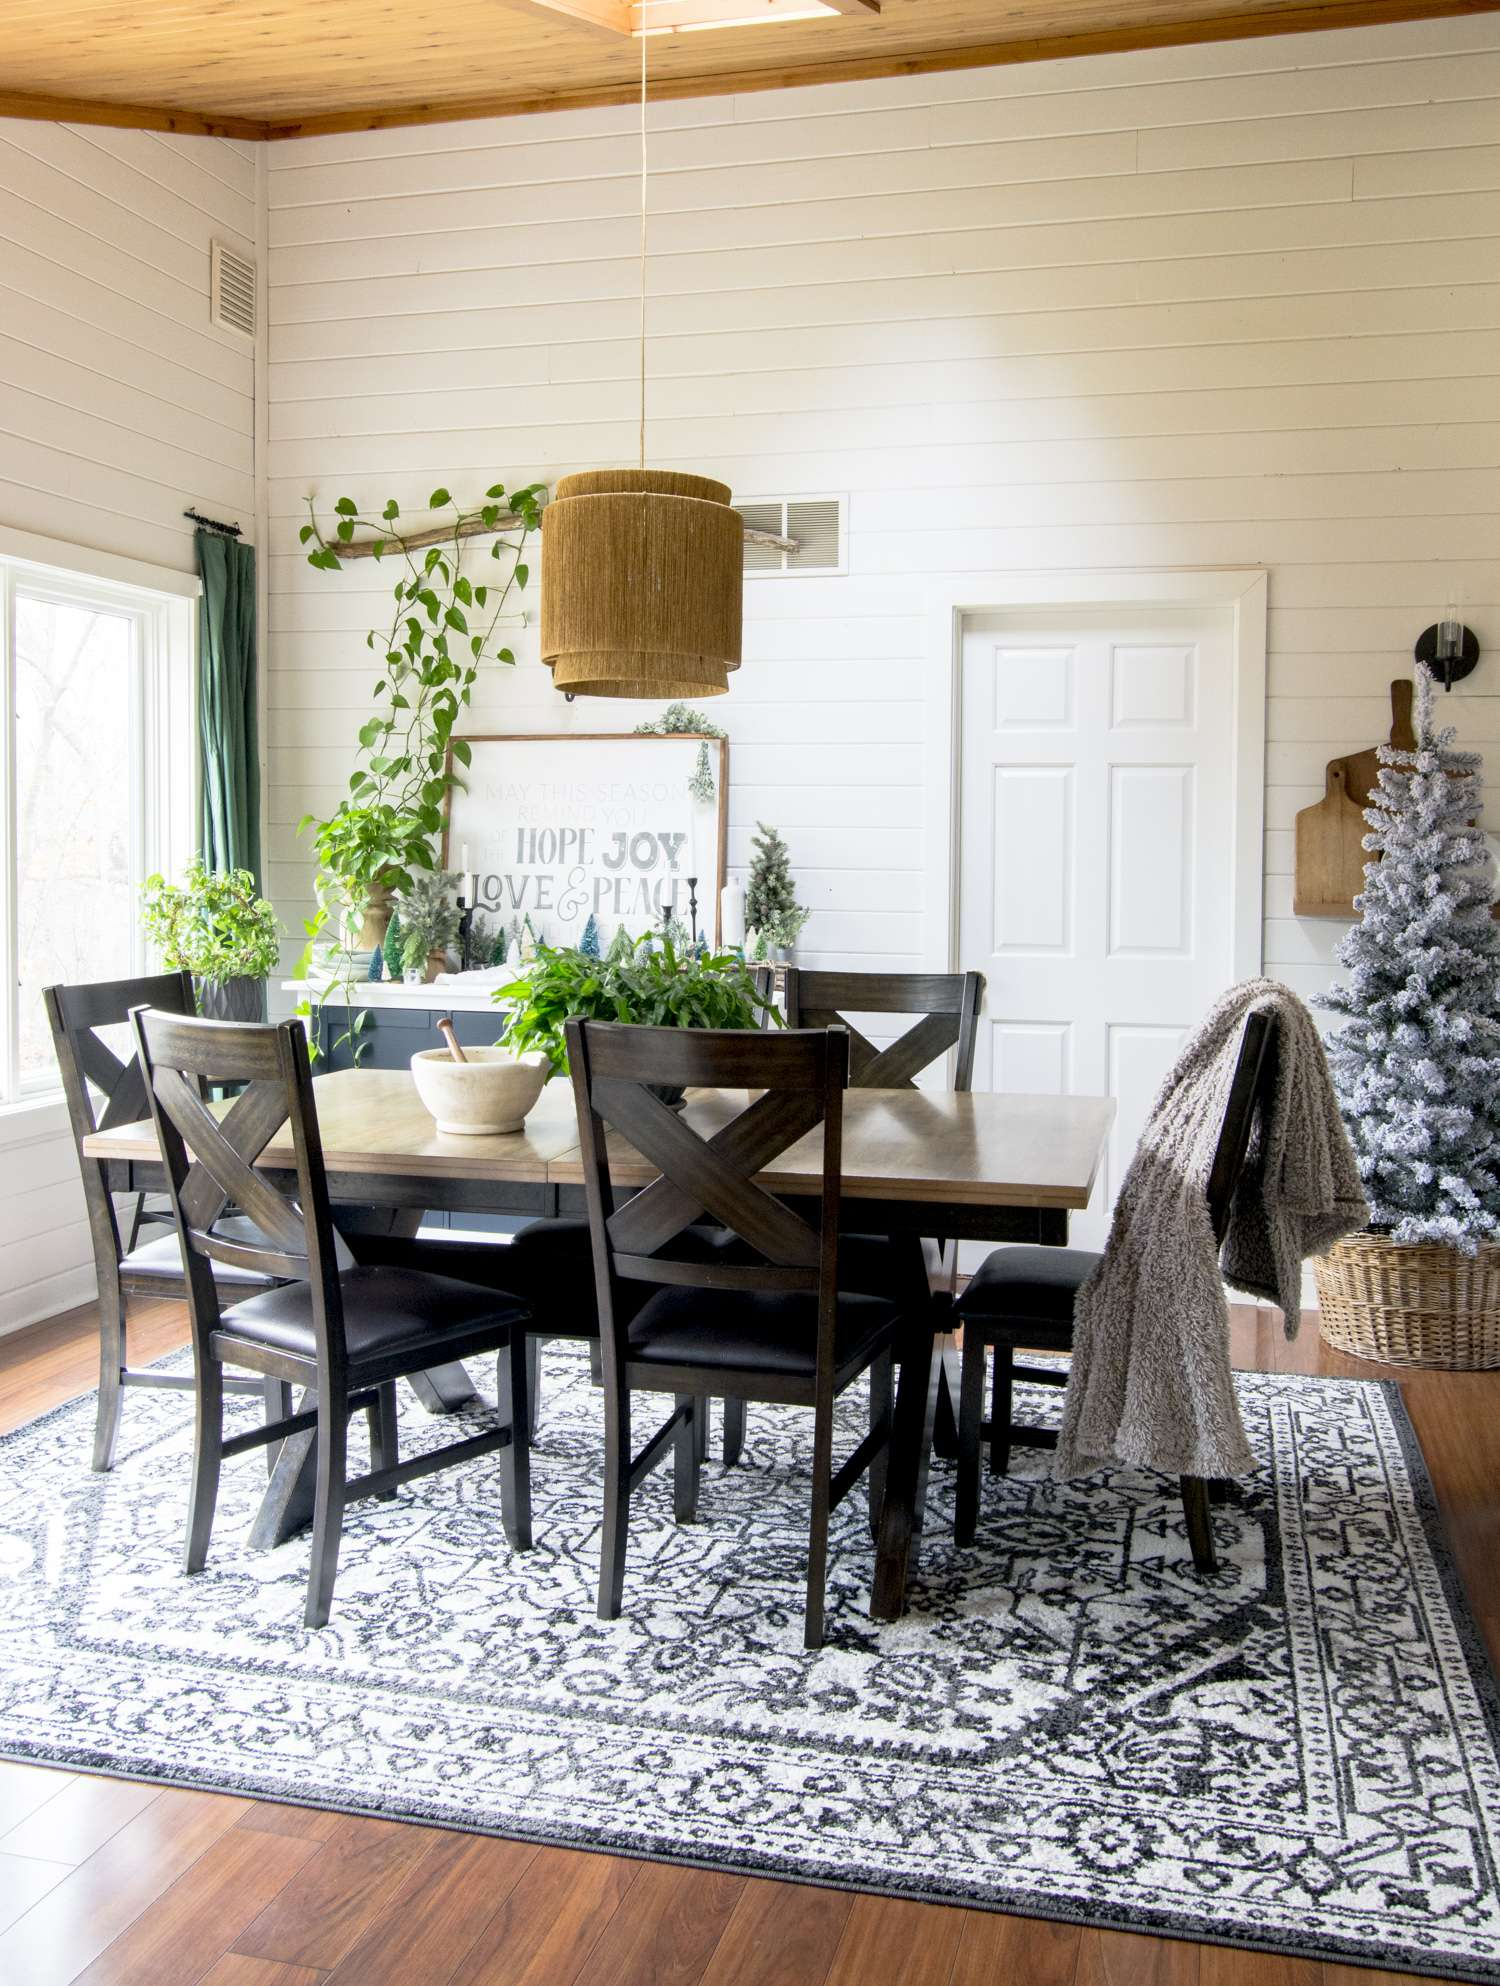 Modern farmhouse dining room styled for Christmas.